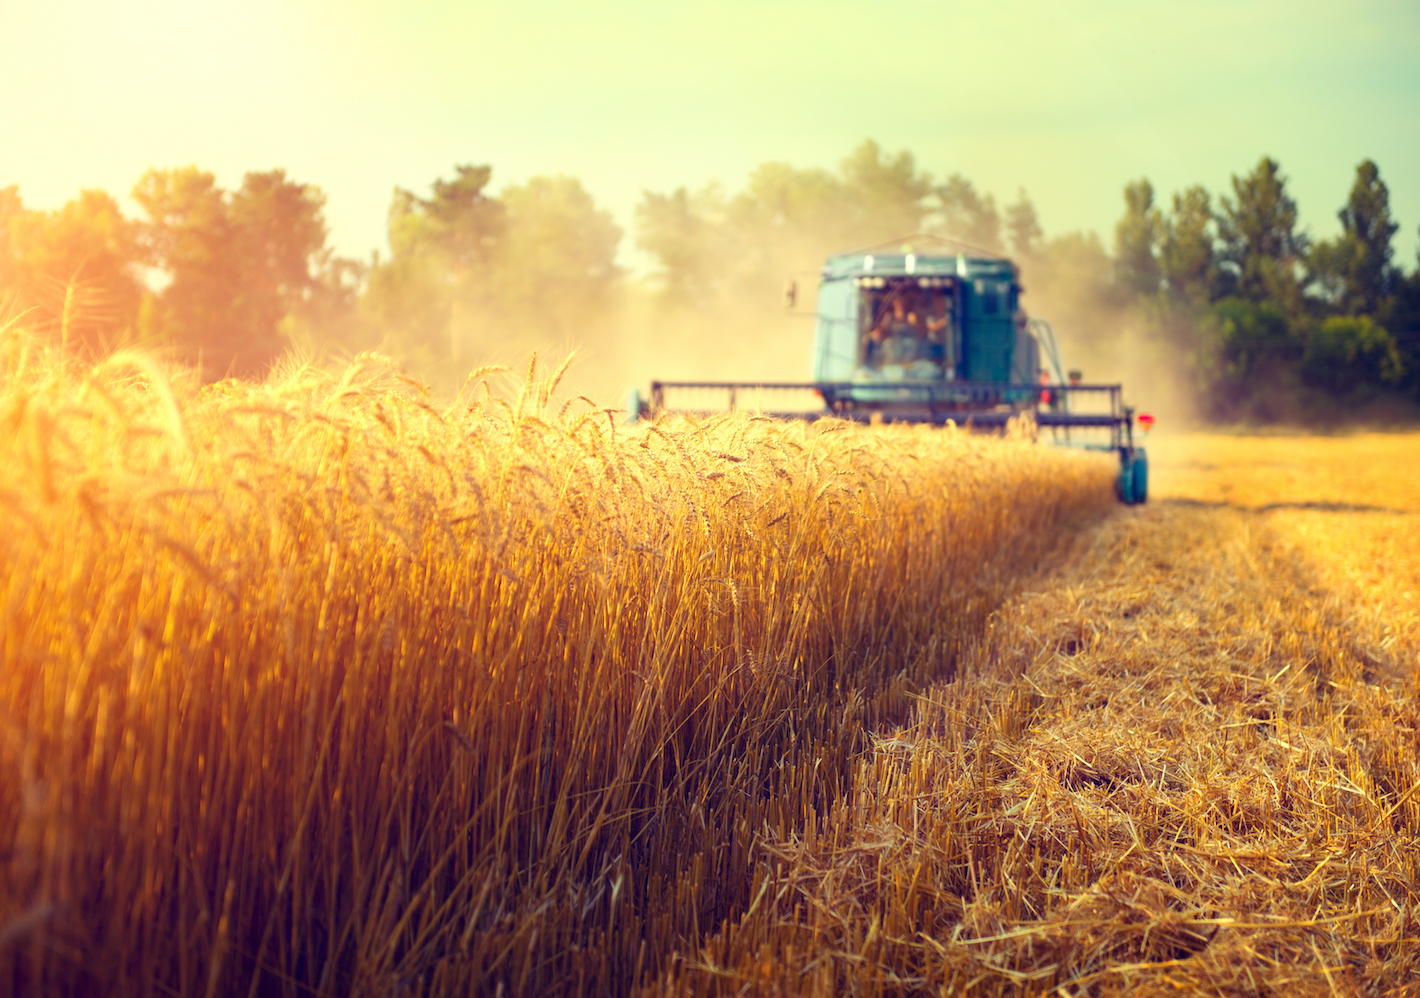 Experts found evidence to support the theory that agriculture commenced in times of surplus, when human populations were more concentrated, and when environmental conditions were improving.